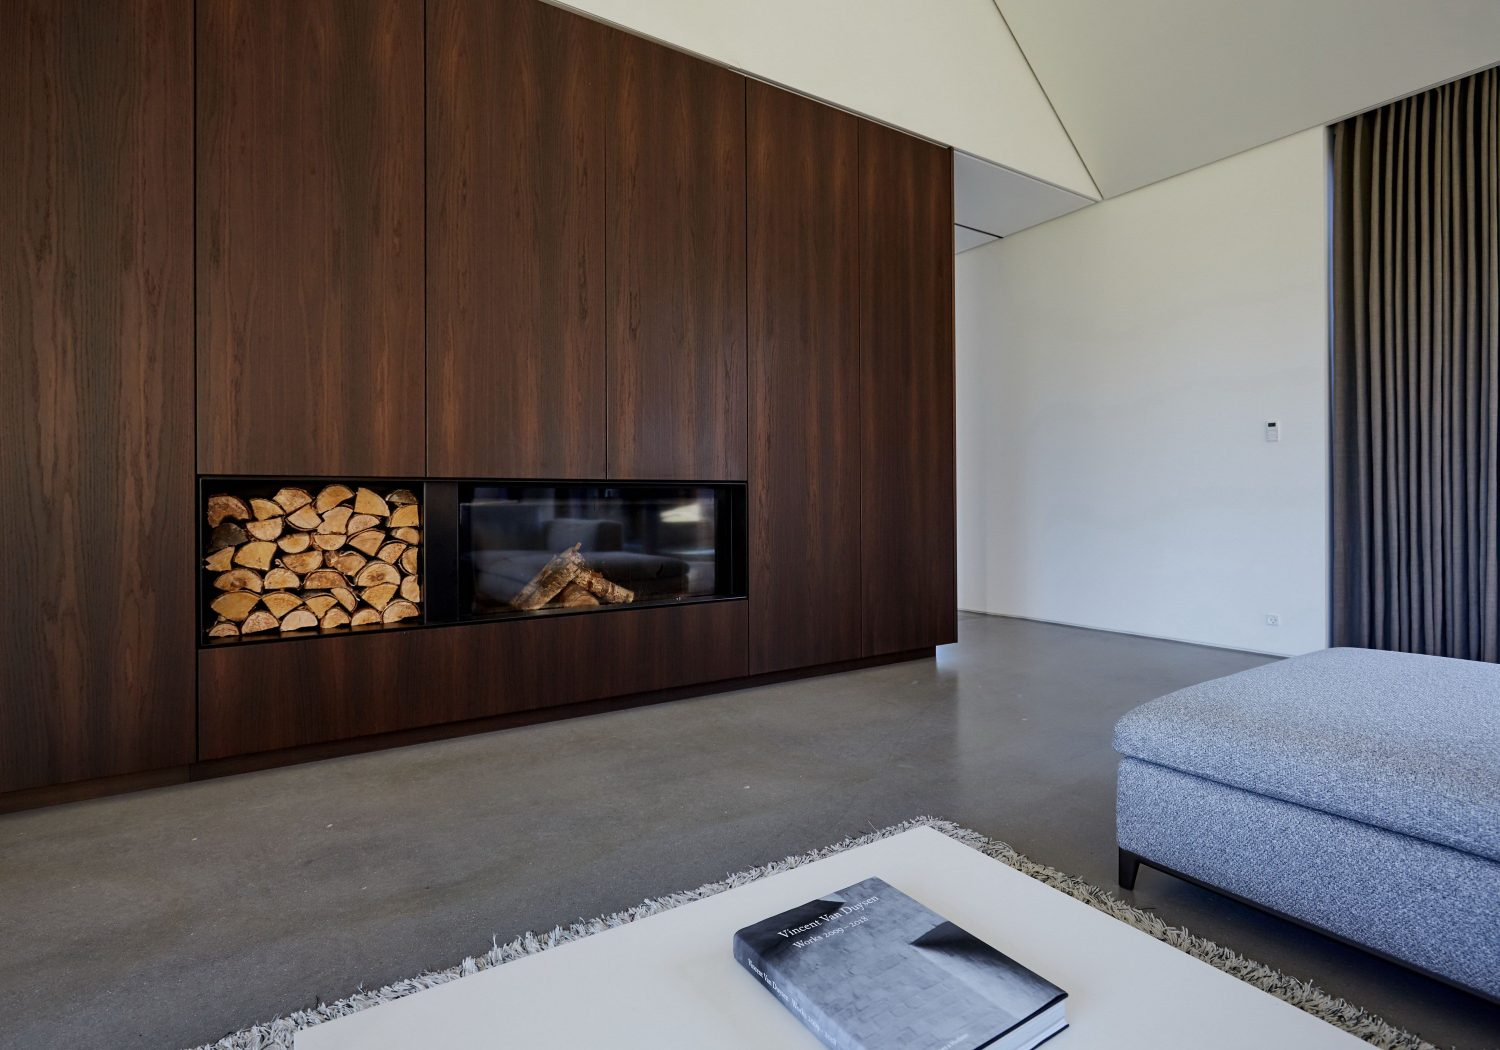 Casa Ry by Christoffersen & Welling Architects